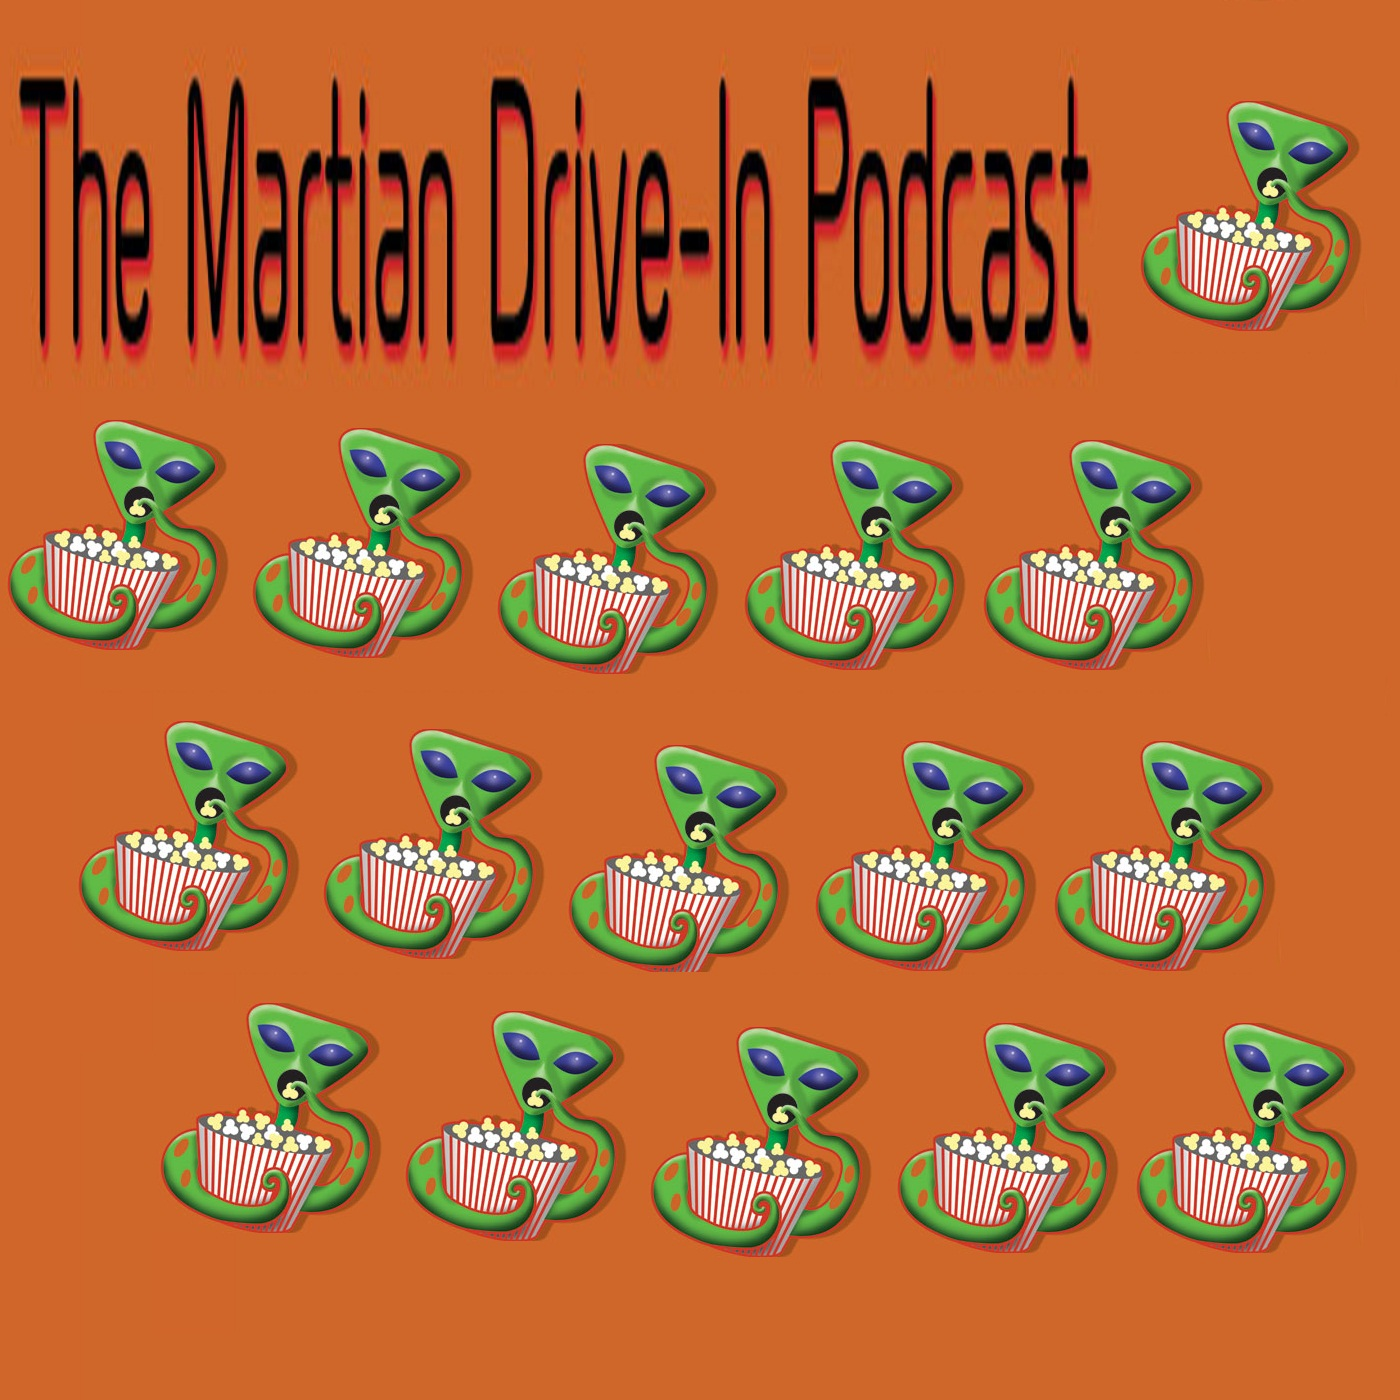 Martian Drive-In Podcast 102 - The Expanse